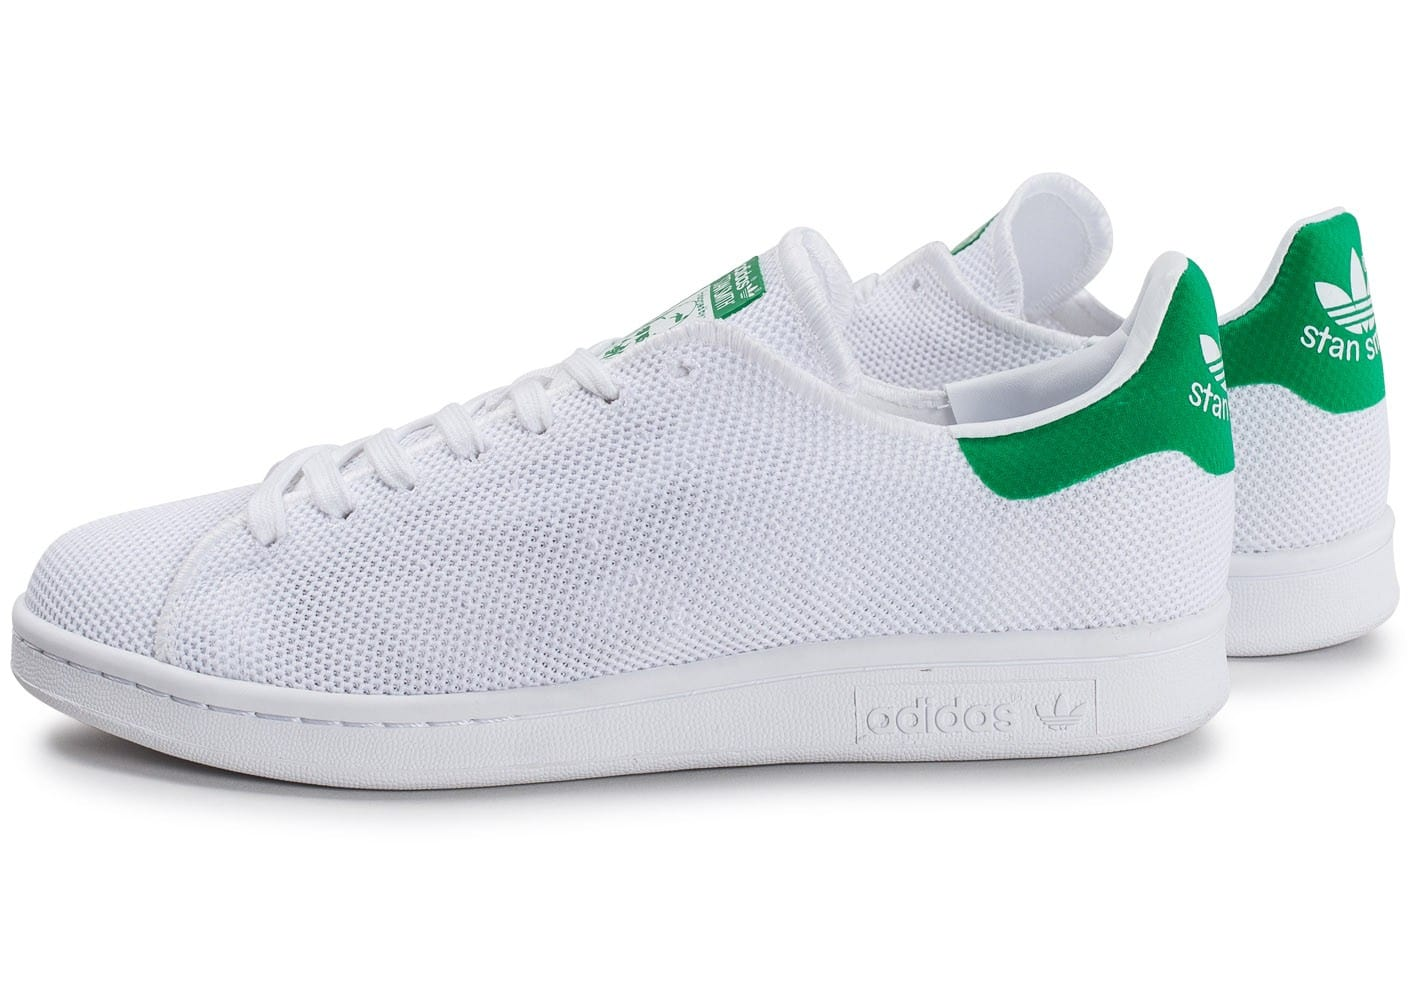 adidas Stan Smith Mesh blanche et verte Chaussures Baskets